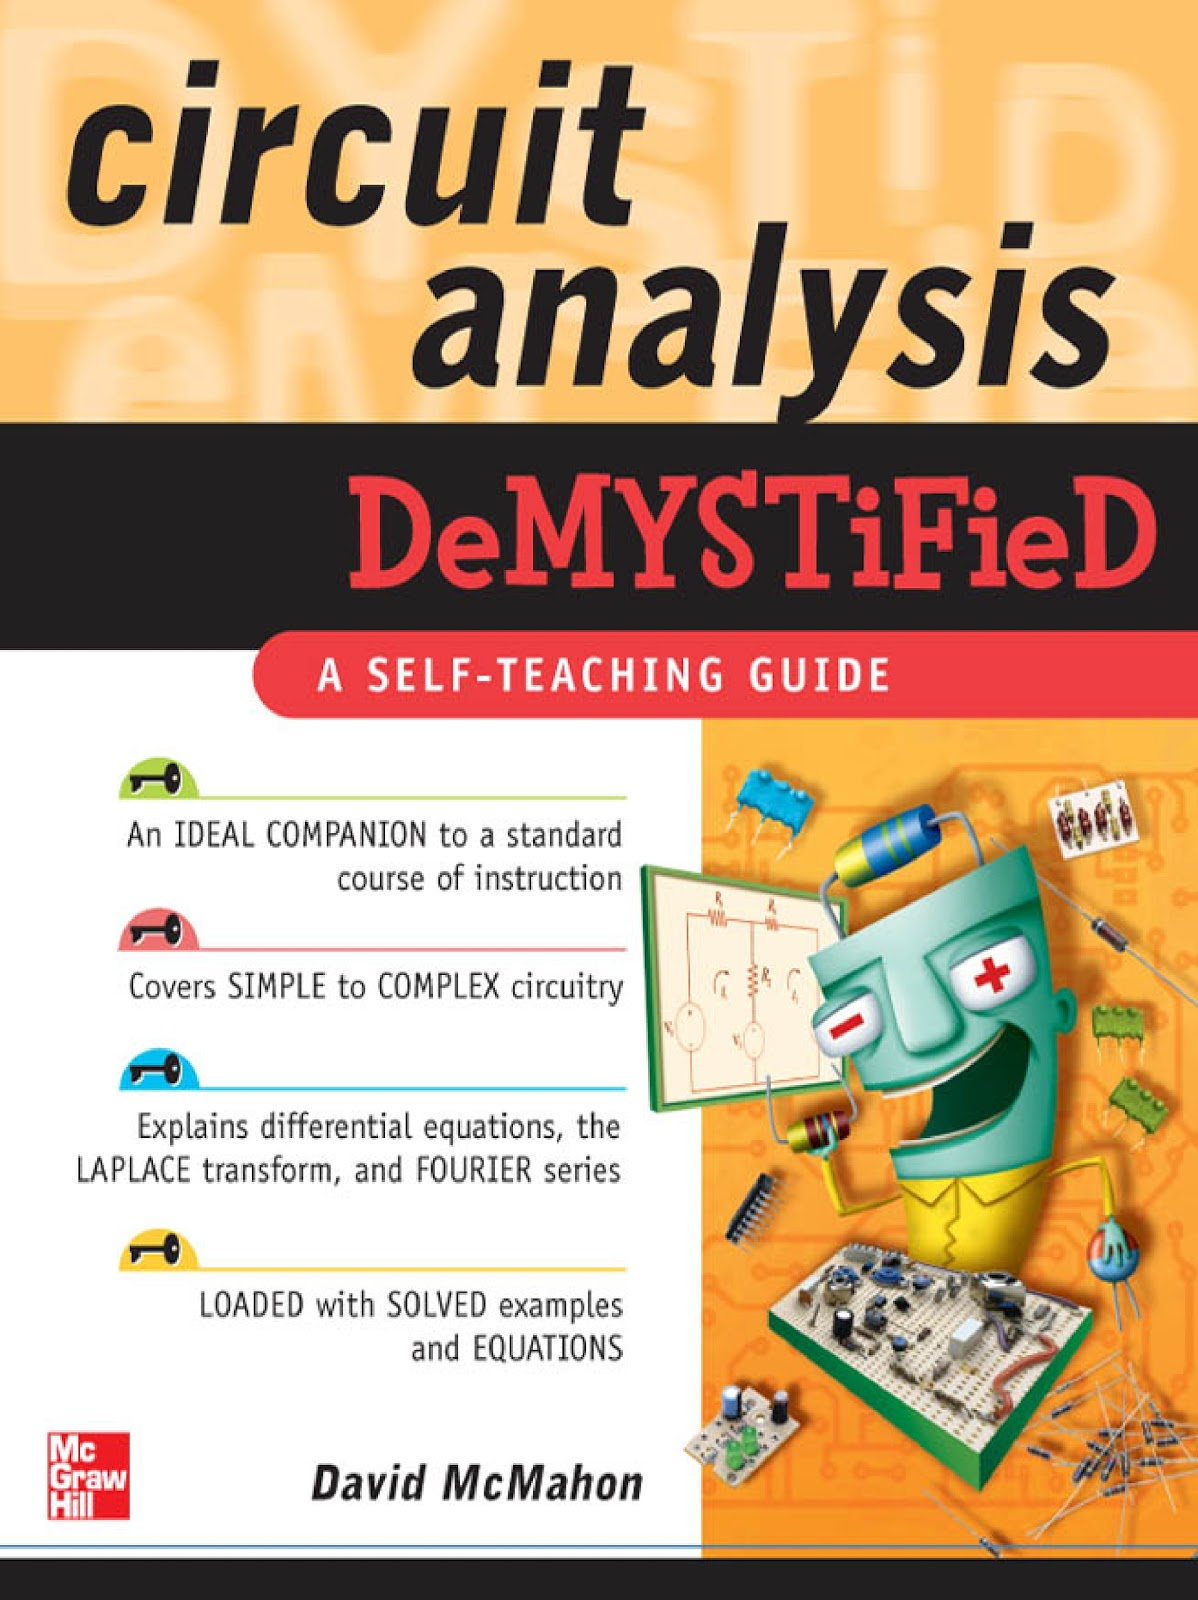 Books for Electrical Circuit Analysis